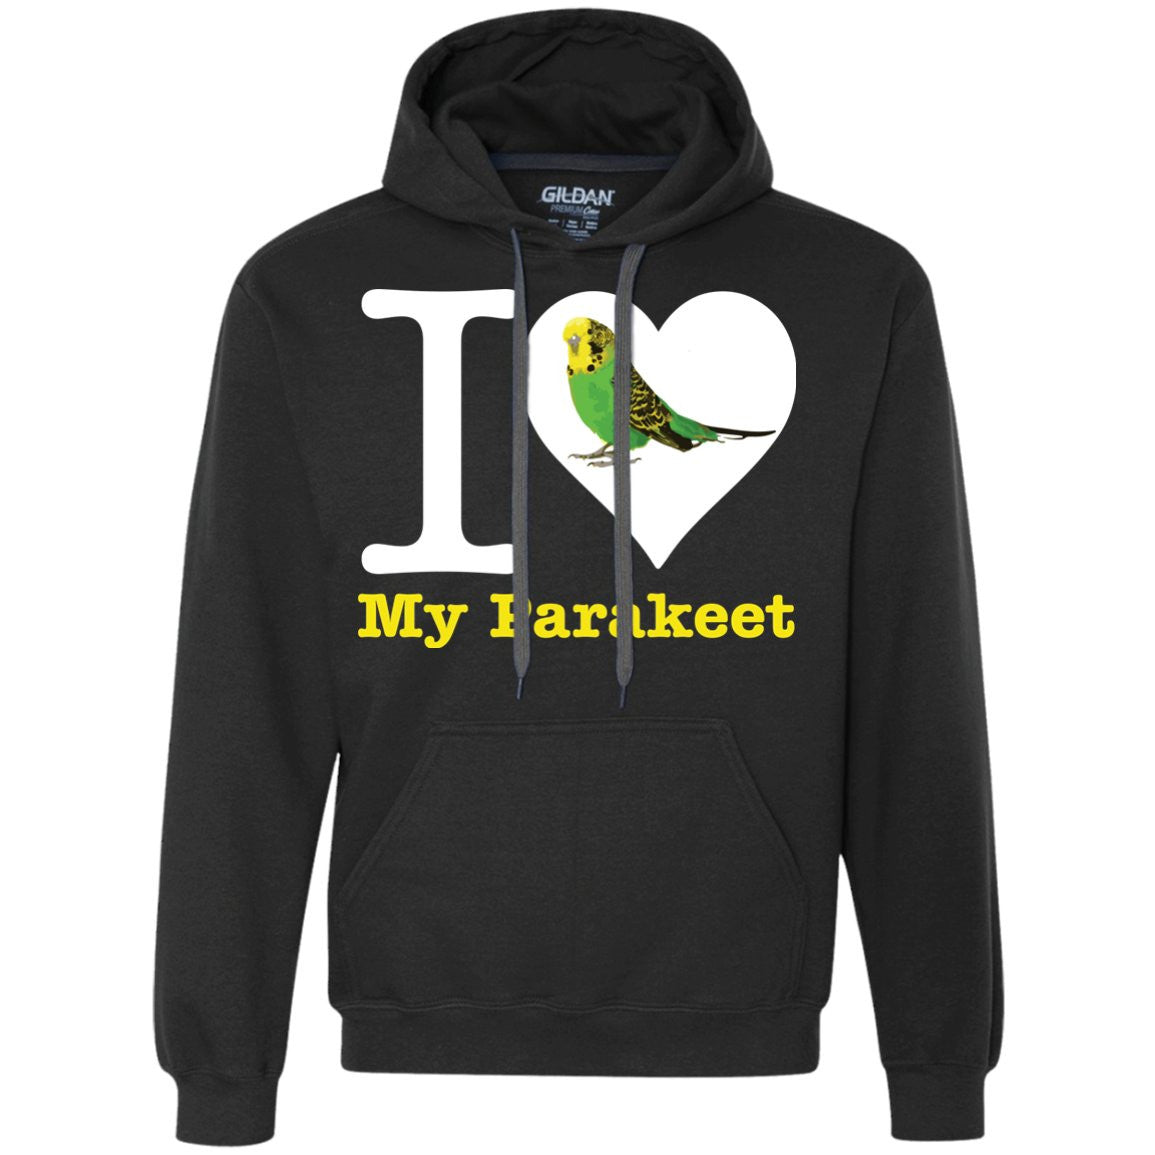 I Love My Parakeet  Heavyweight Pullover Fleece Sweatshirt